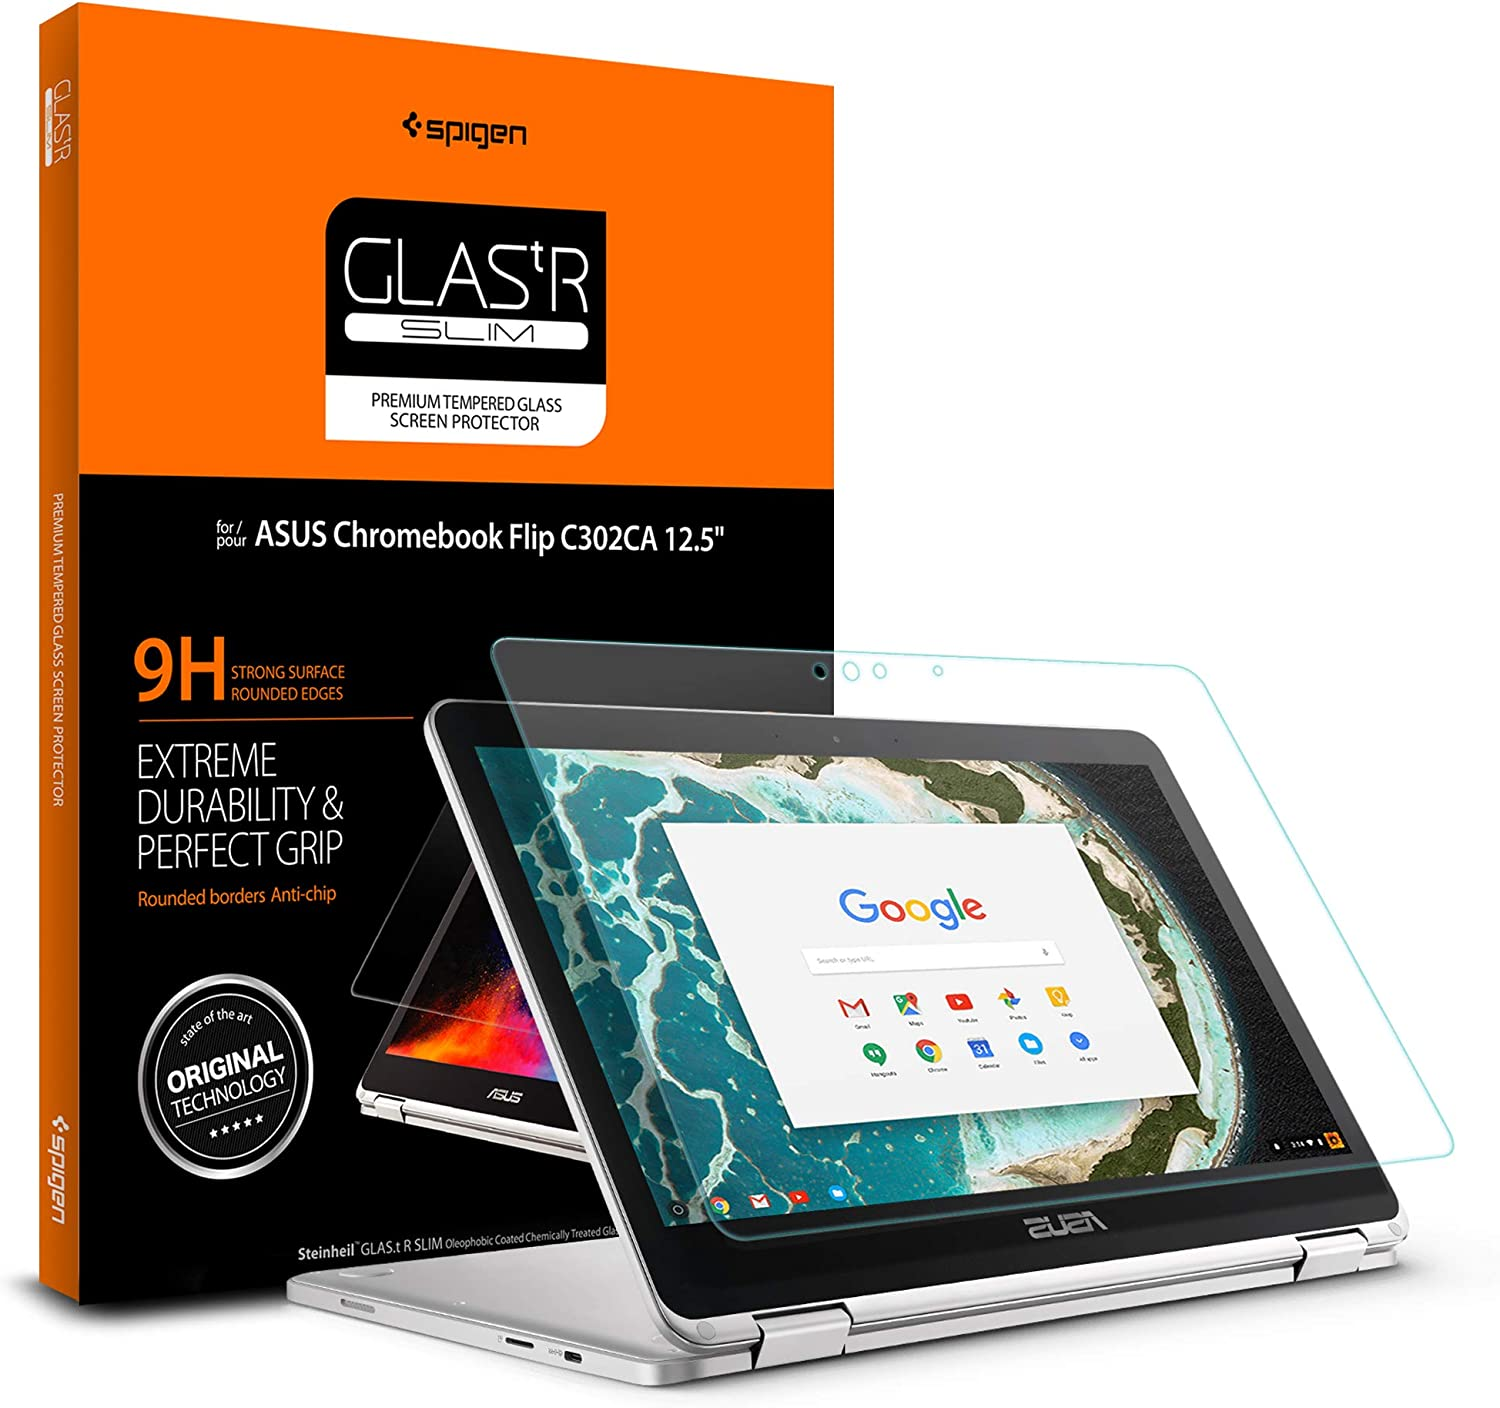 Spigen Tempered Glass Screen Protector Designed for ONLY Asus Chromebook Flip C302CA (12.5 inch) [9H Hardness]